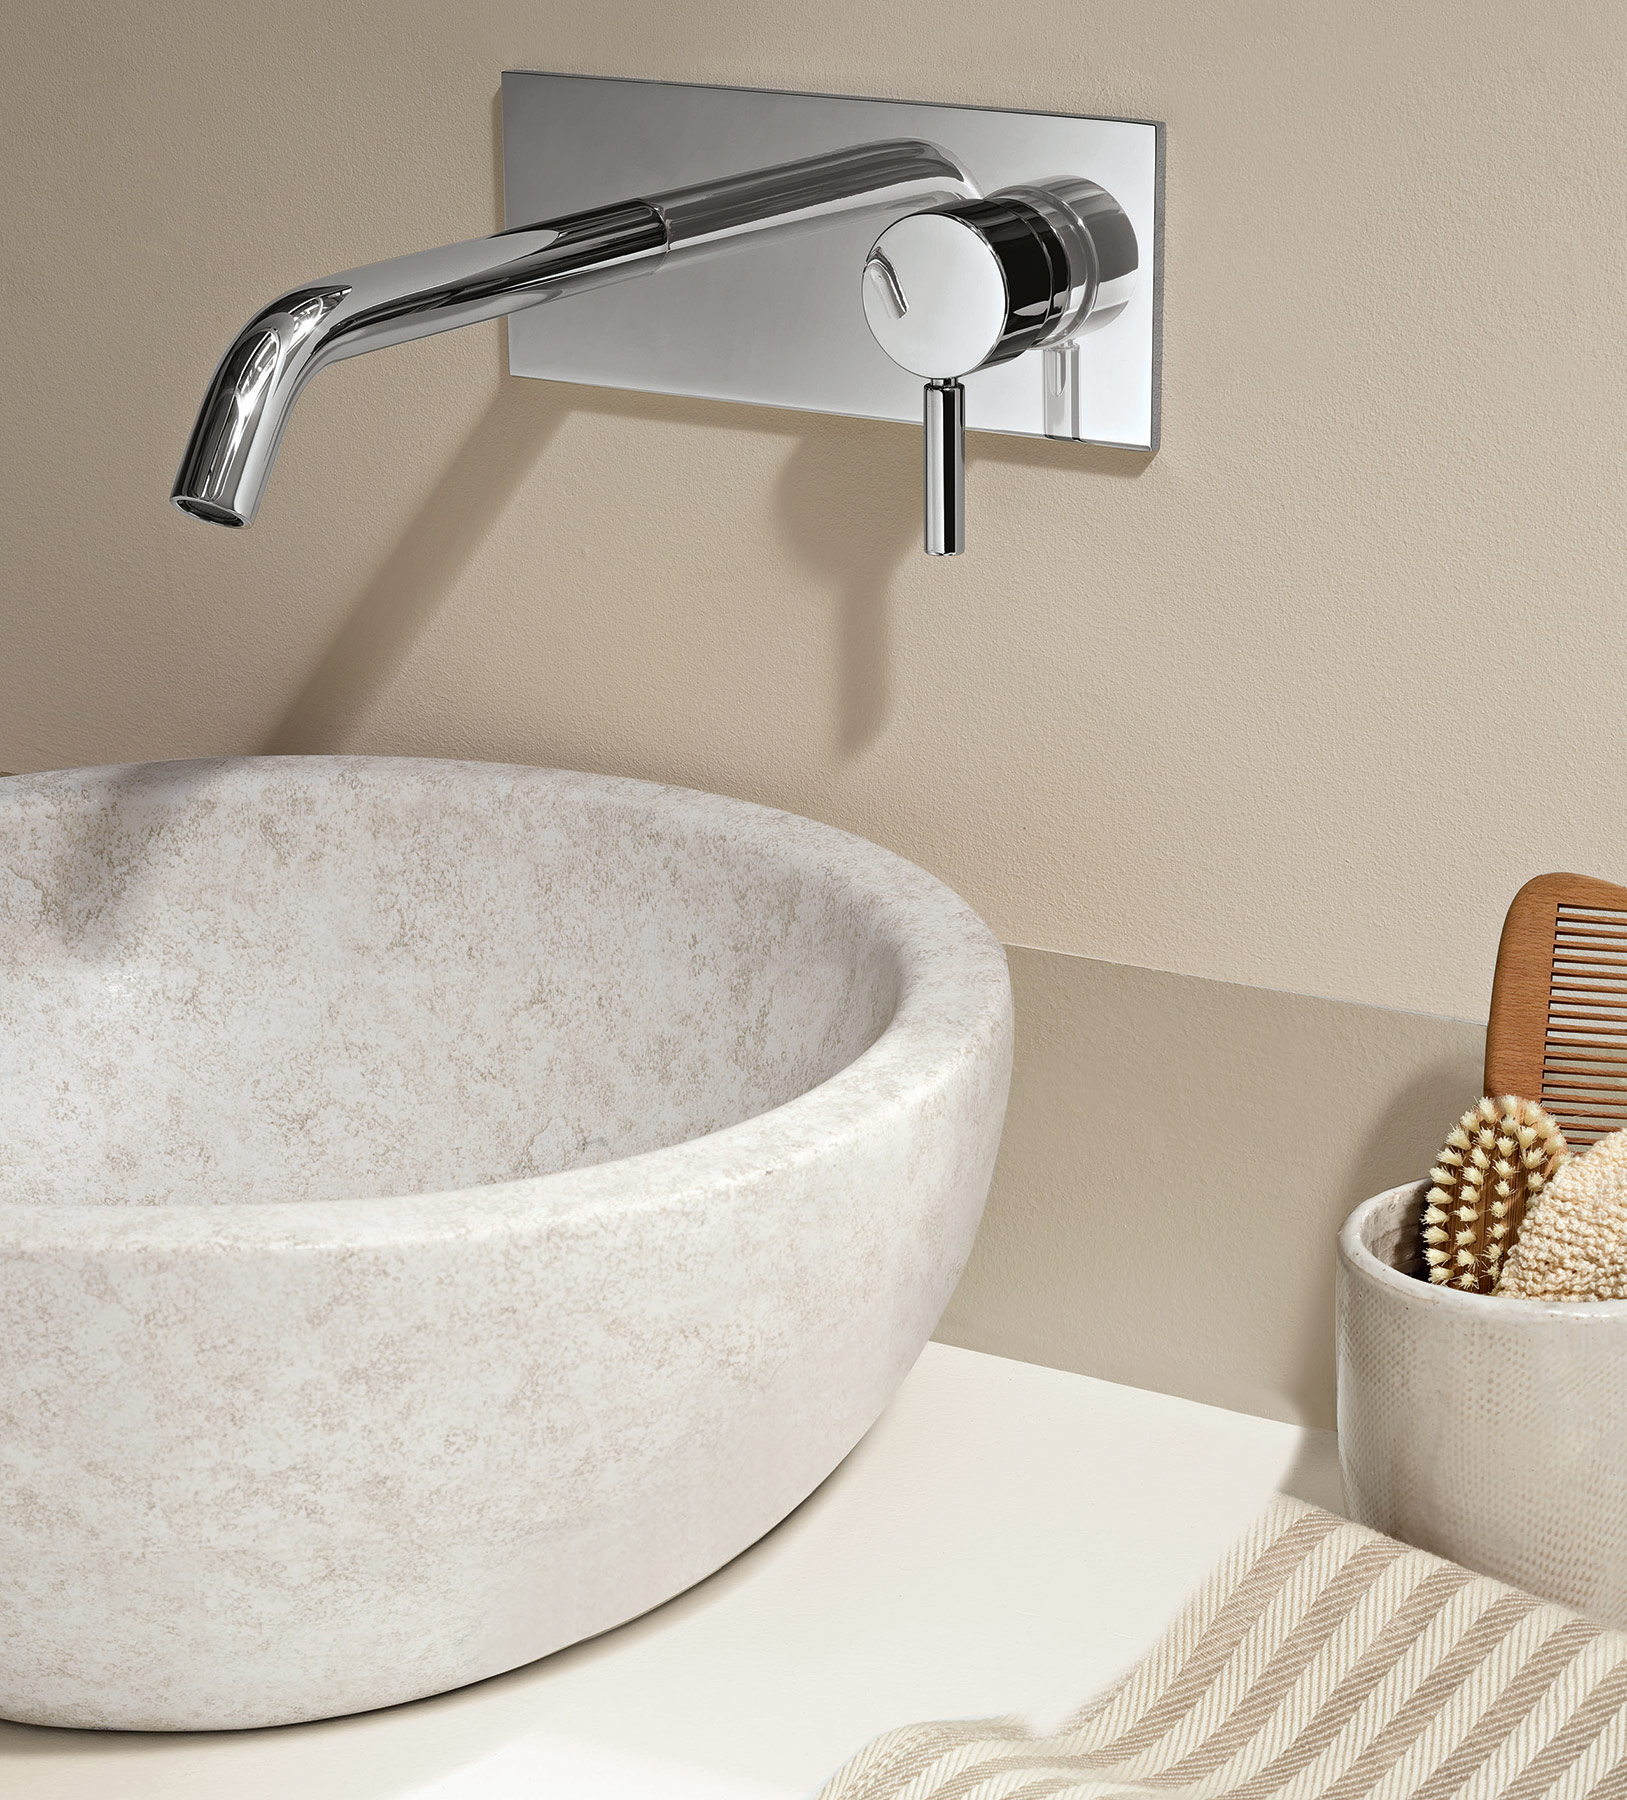 Small wall mount faucet - Transitional Nostromo Small Wall Mount Faucet